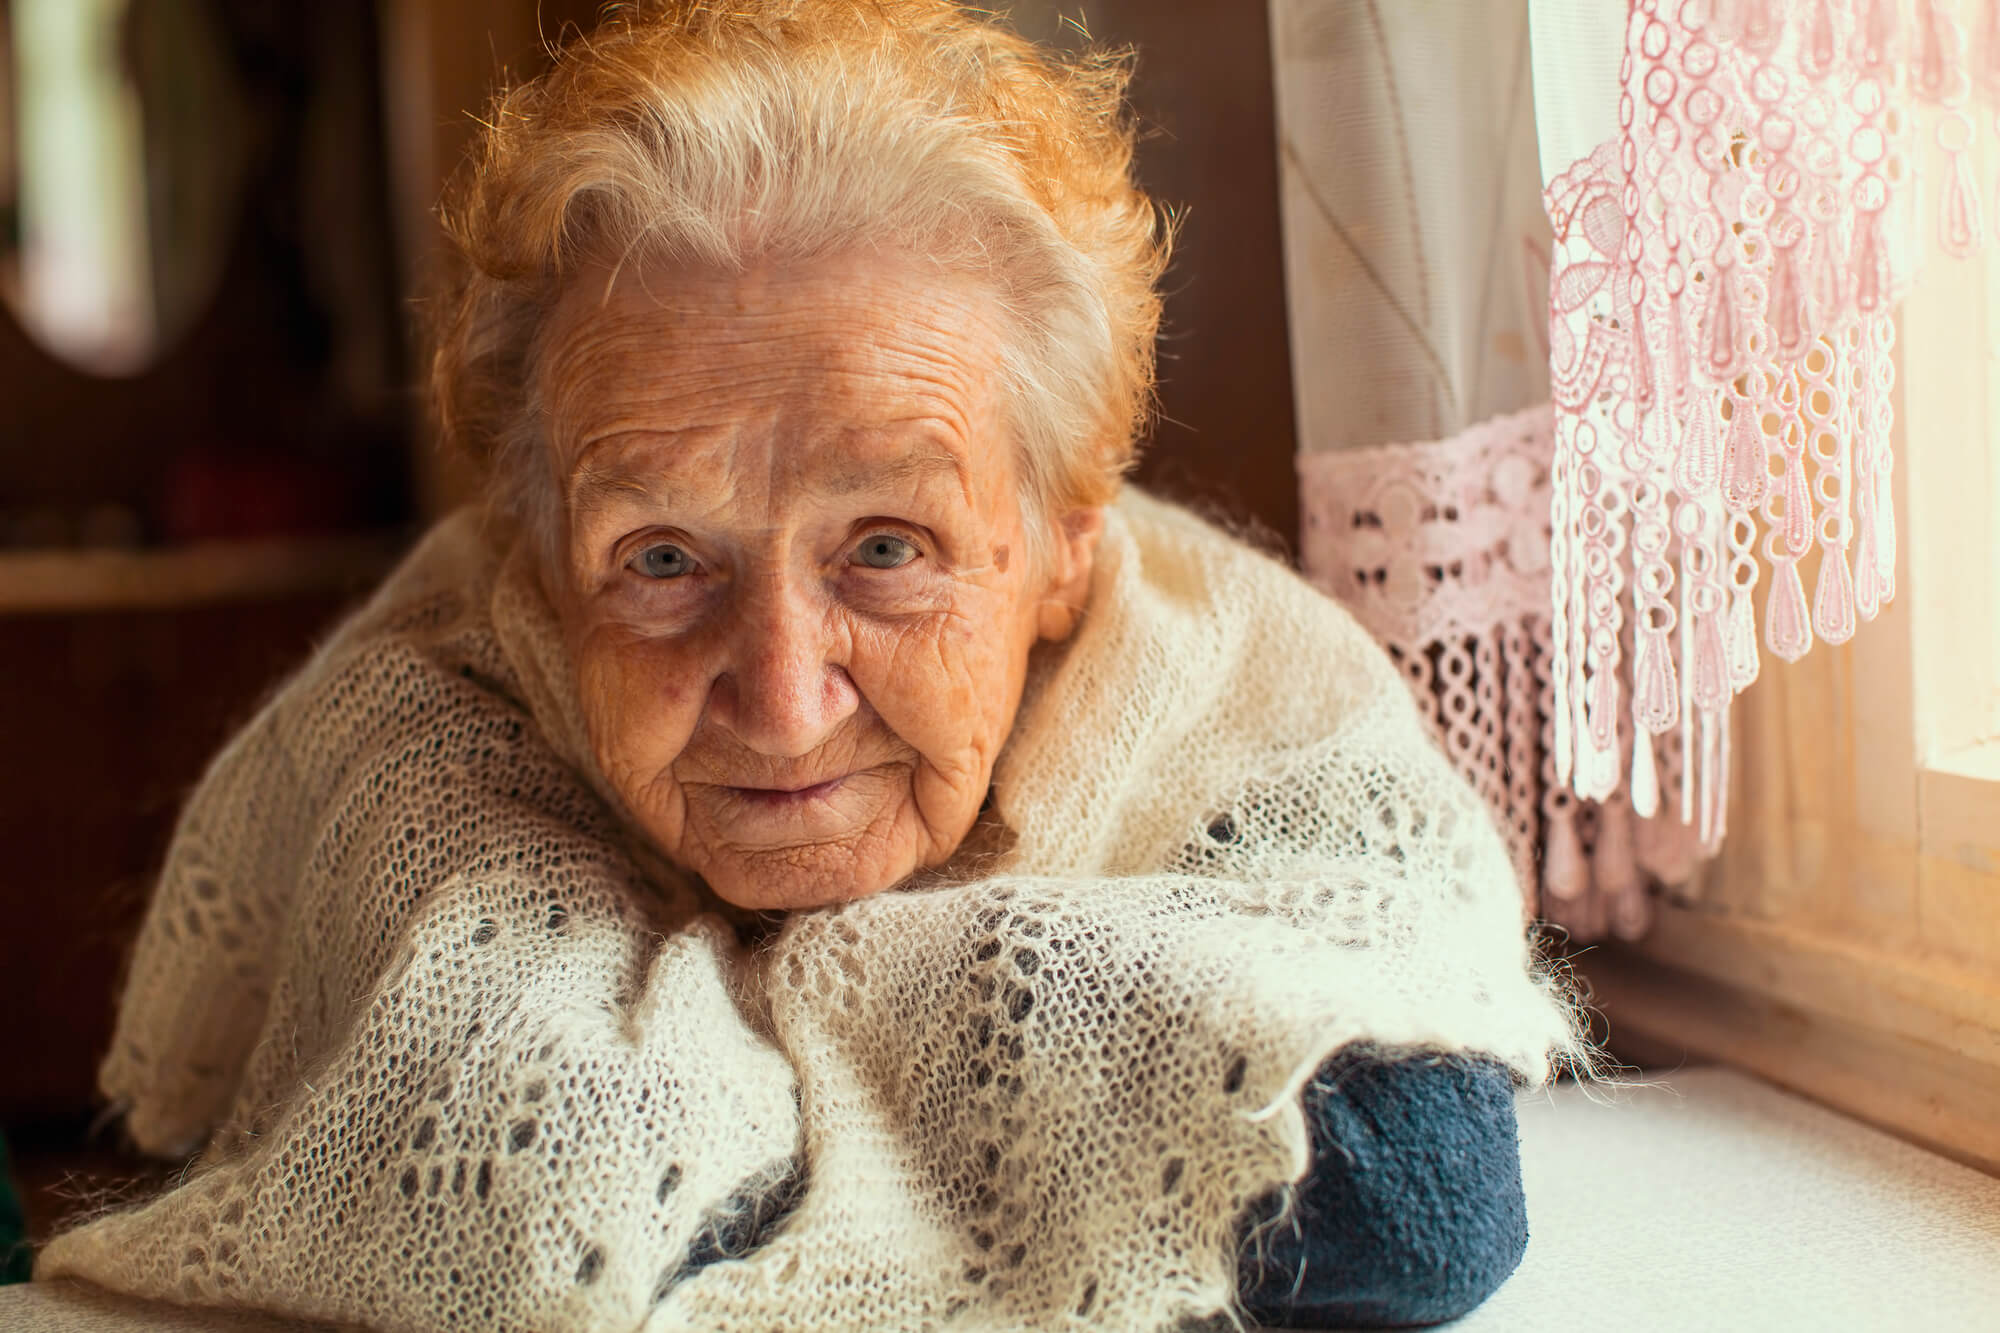 elderly woman with white hair wrapped up in a knitted shawl looking at the camera